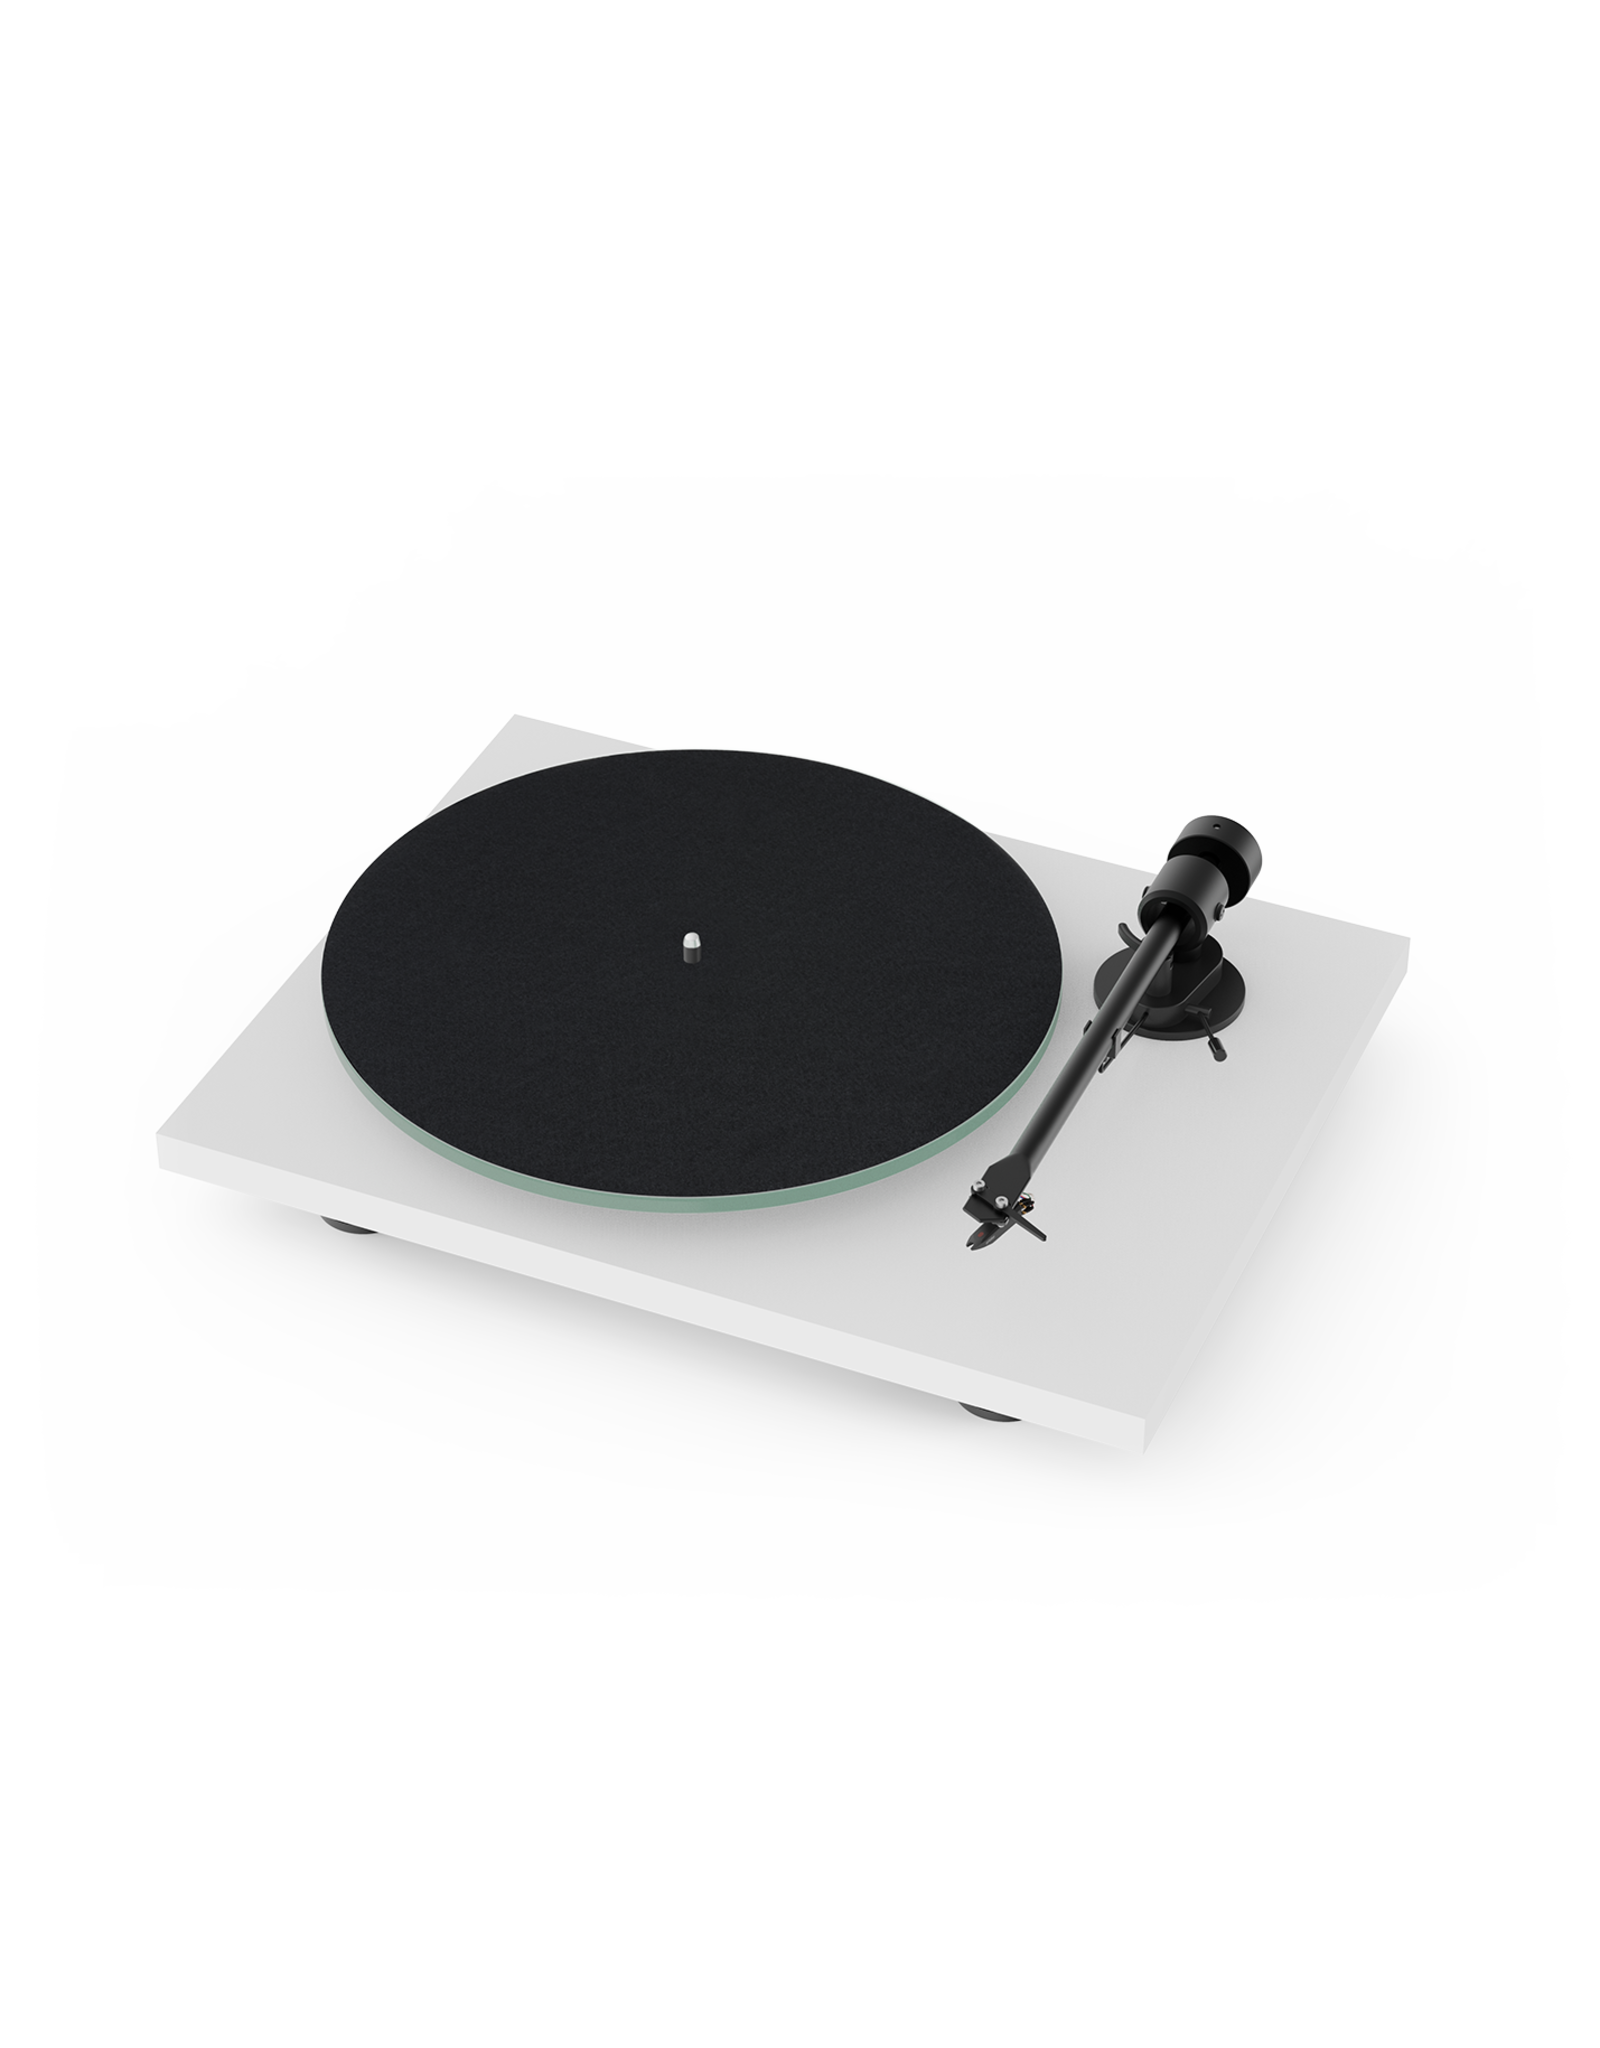 Pro-Ject Pro-Ject T1 Turntable